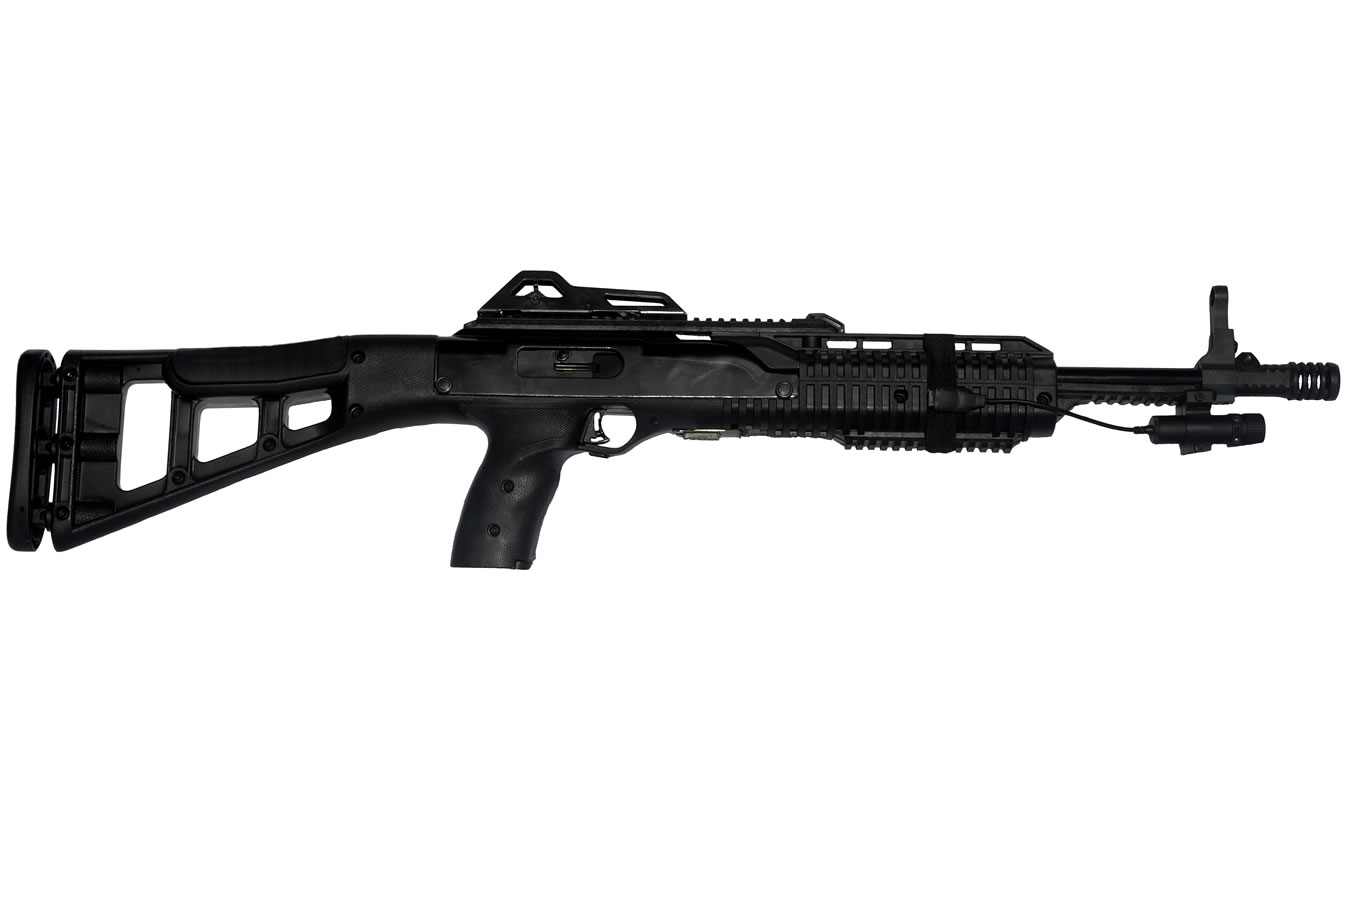 99TS 9MM CARBINE WITH LASER